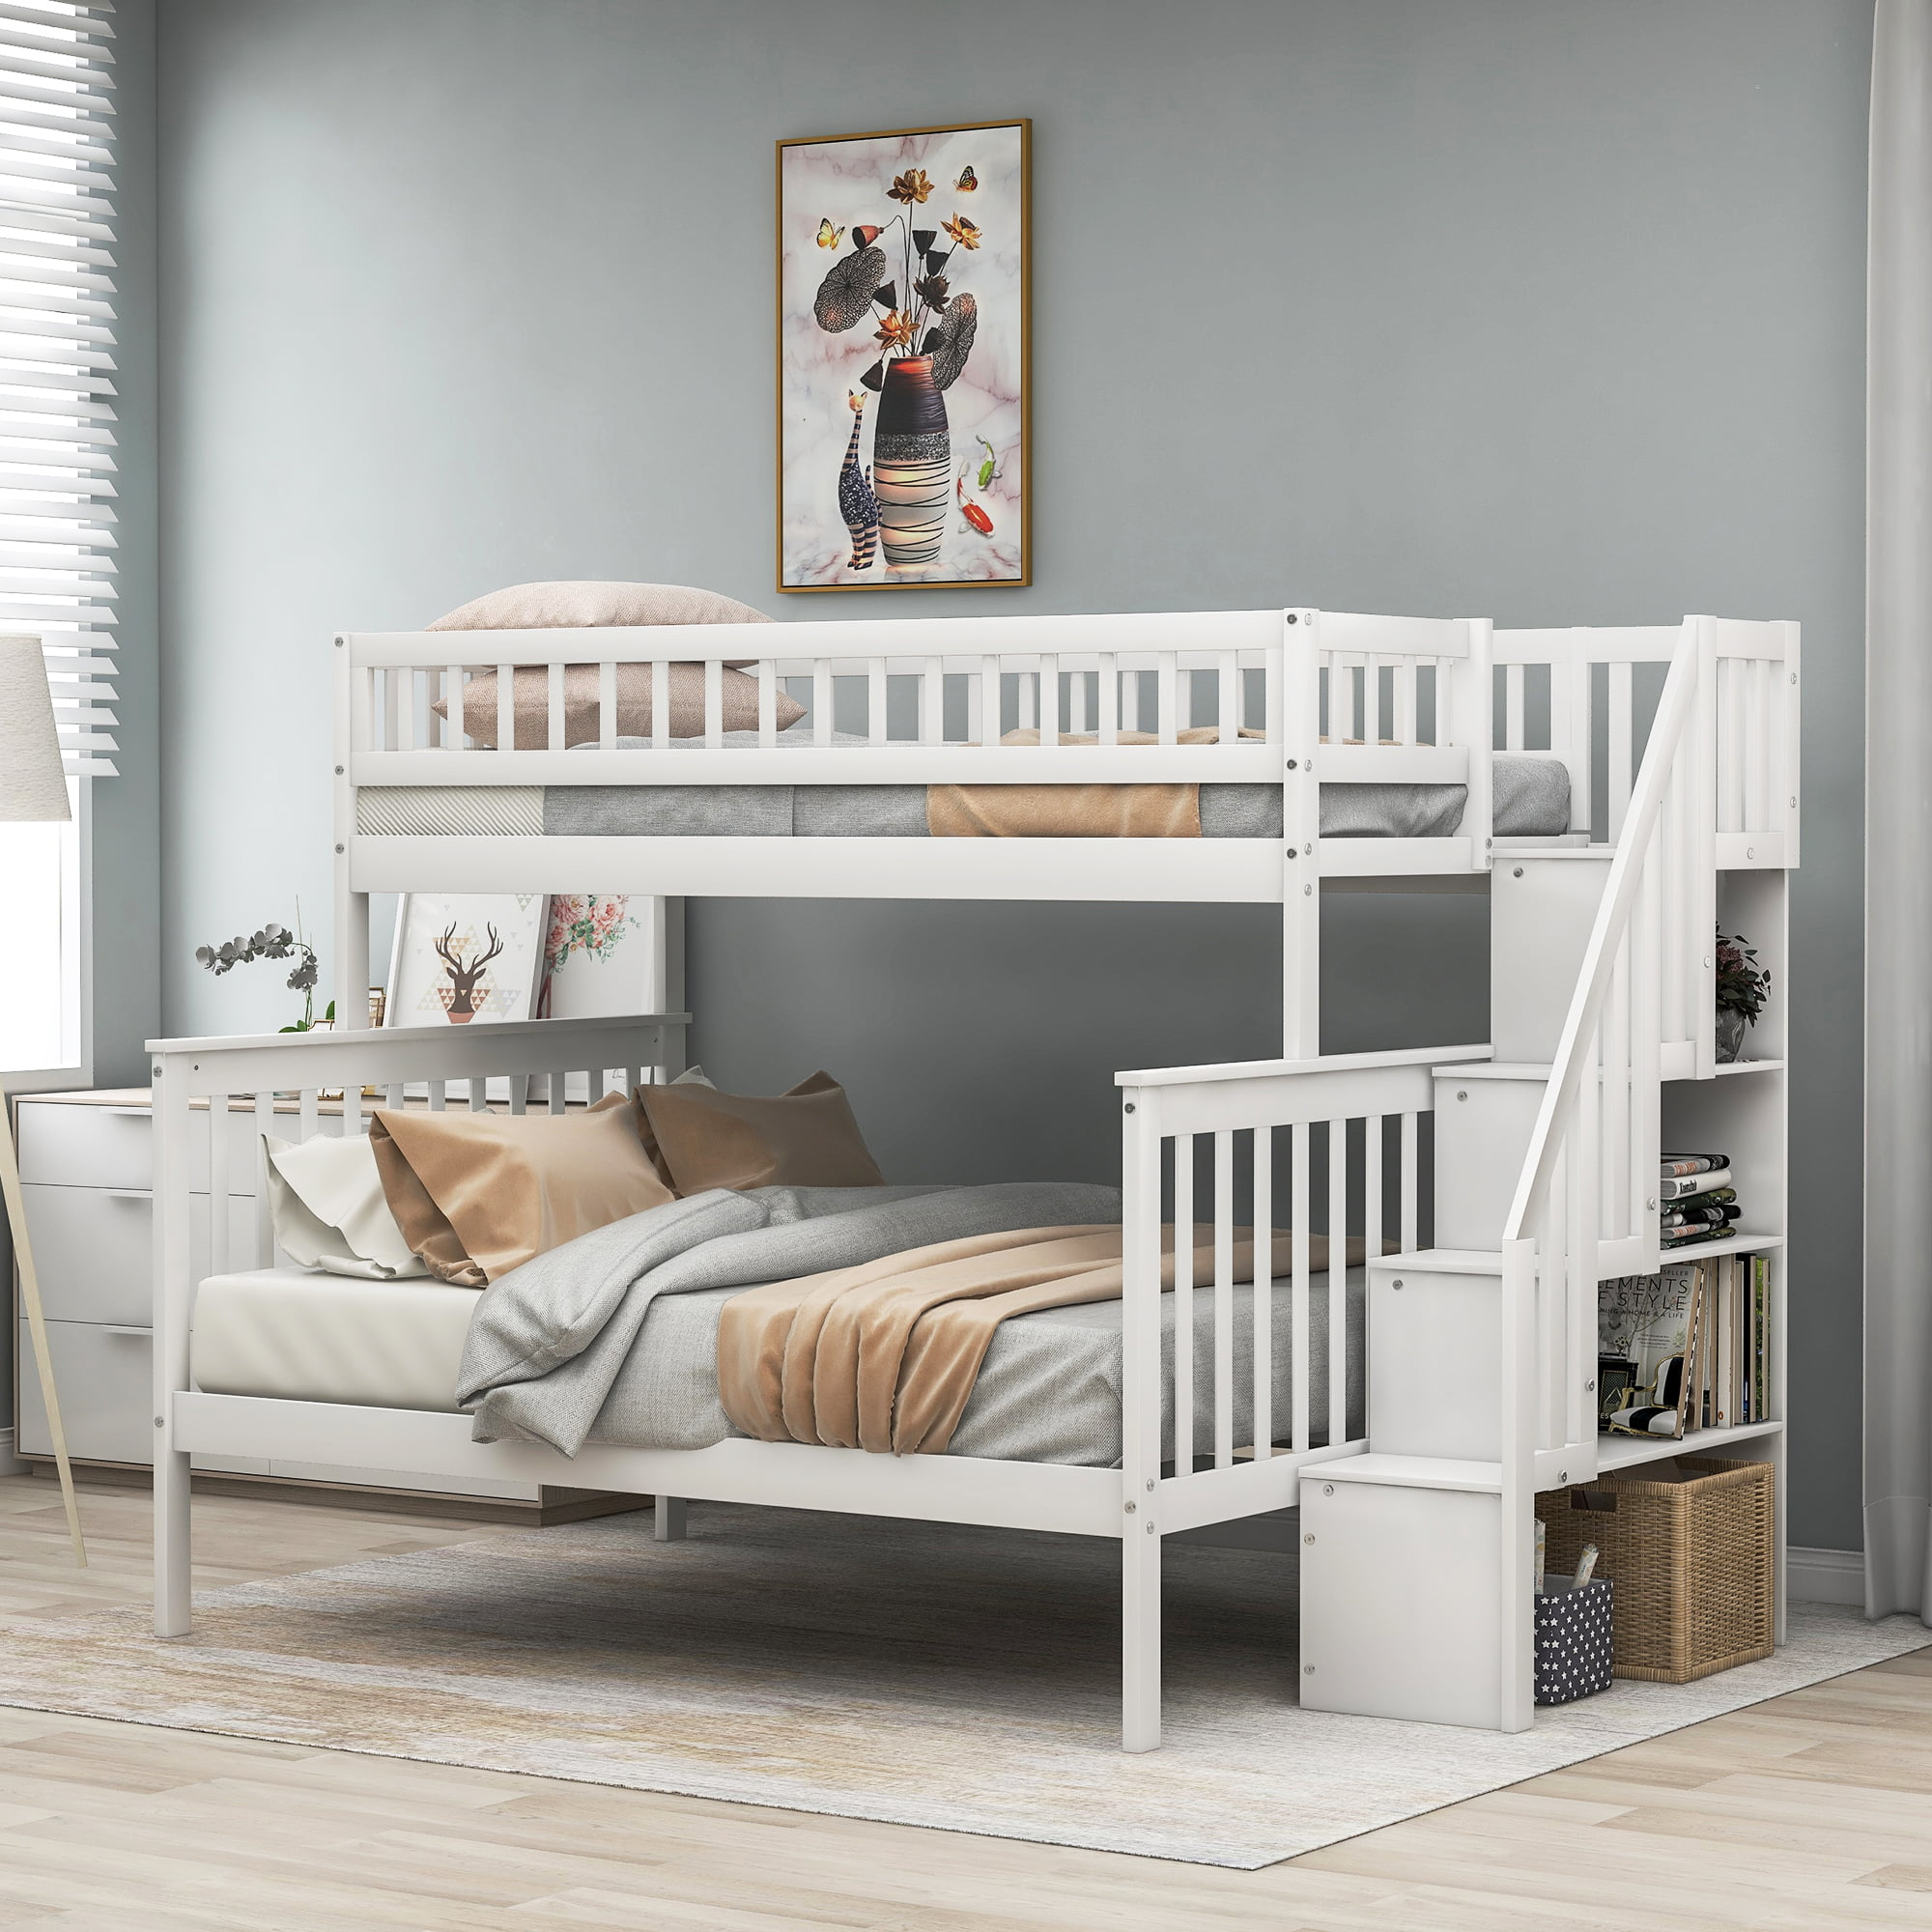 Harper Bright Designs Twin Over Full Bunk Bed With Stairs And Storage For Kids Multiple Colors Walmart Com Walmart Com